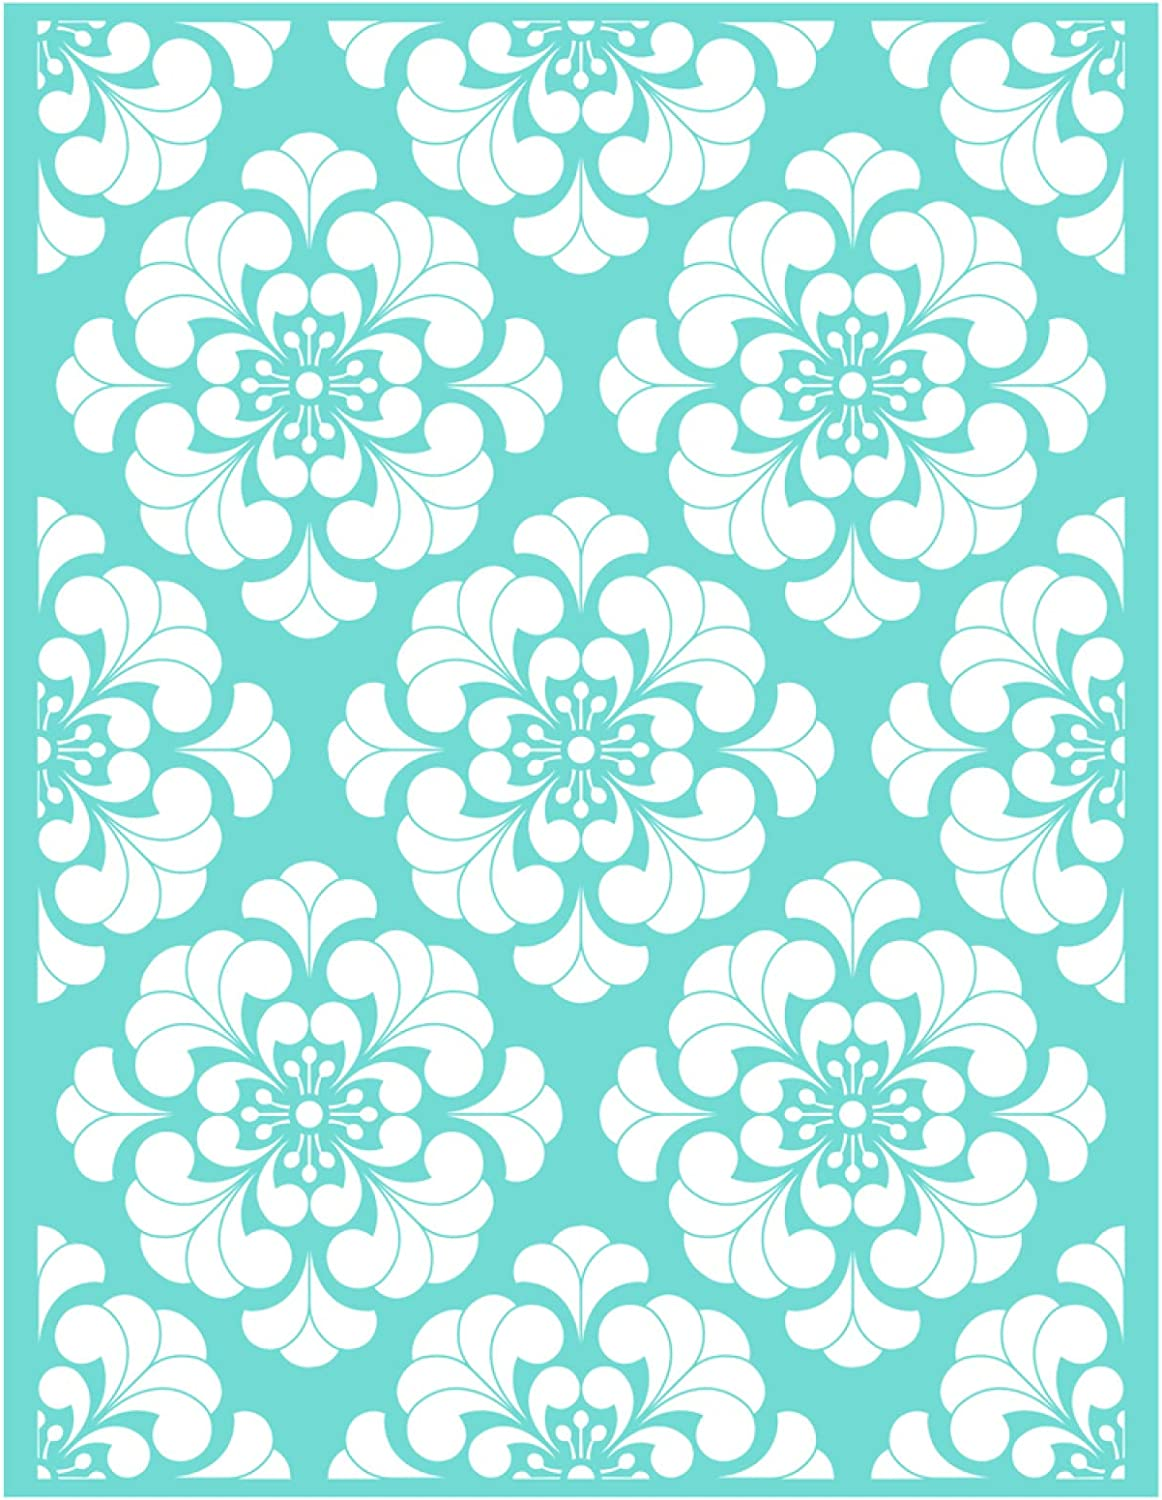 Self-Adhesive Reusable Sign Stencils for DIY Painting on Wood Clothes Fabric Decoration 14PCS YeulionCraft Mandala Florals Elements Silk Screen Printing Stencil